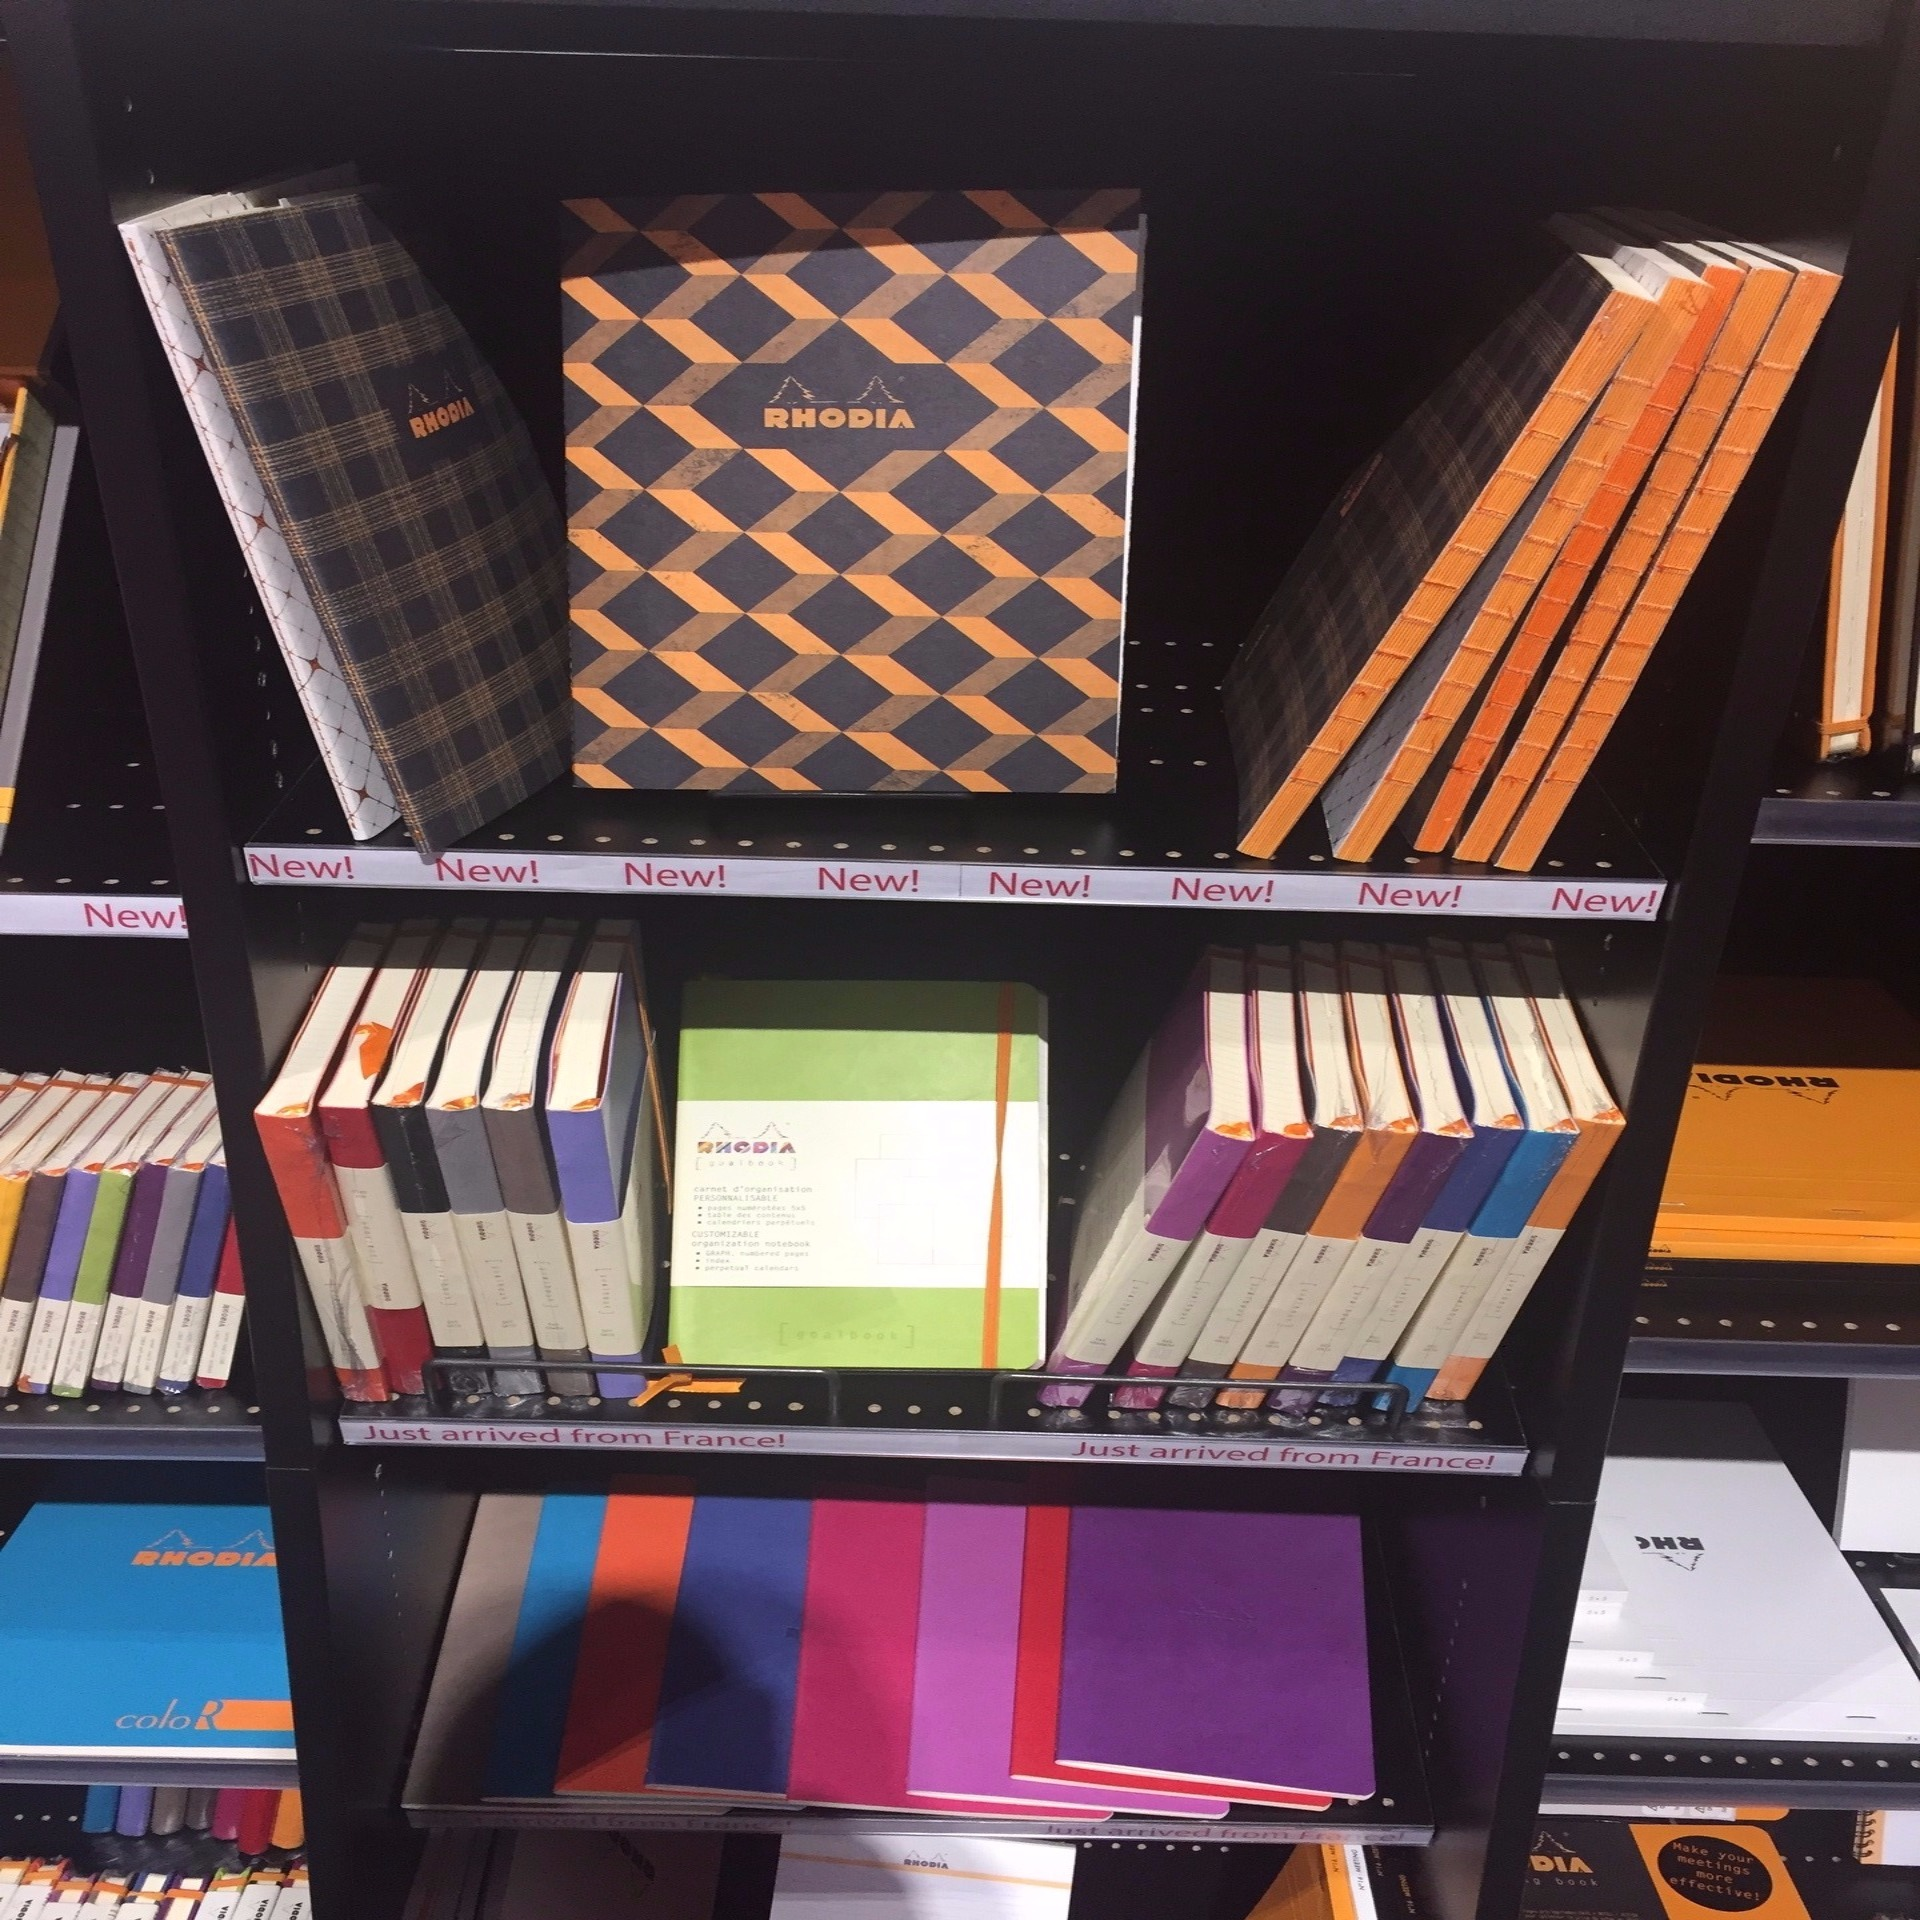 Rhodia Paper at the NY Stationery Show